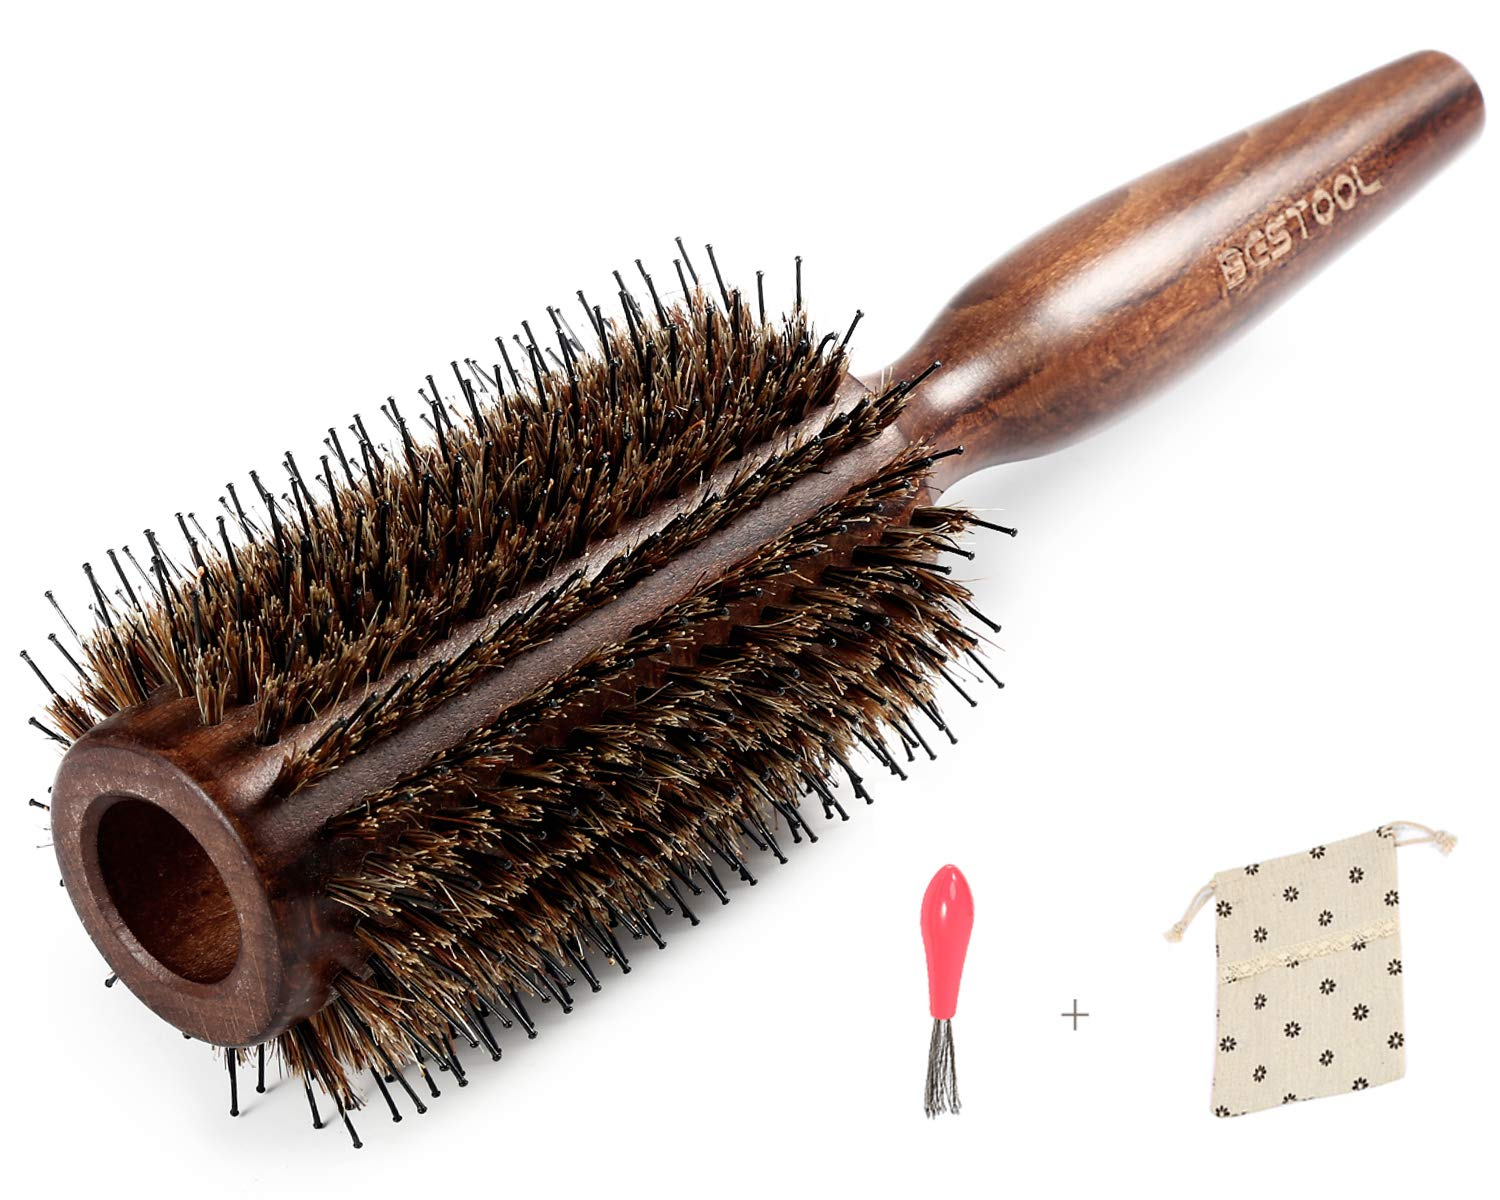 BESTOOL Boar Bristle Round Hair Brush with Nylon Pin Wooden Detangling Large Round Brush for For Men, Women, Kid Blow Drying, Dry, Wet, Thick and Curly Hair, Adding Volume and Shine (1.5 inch)